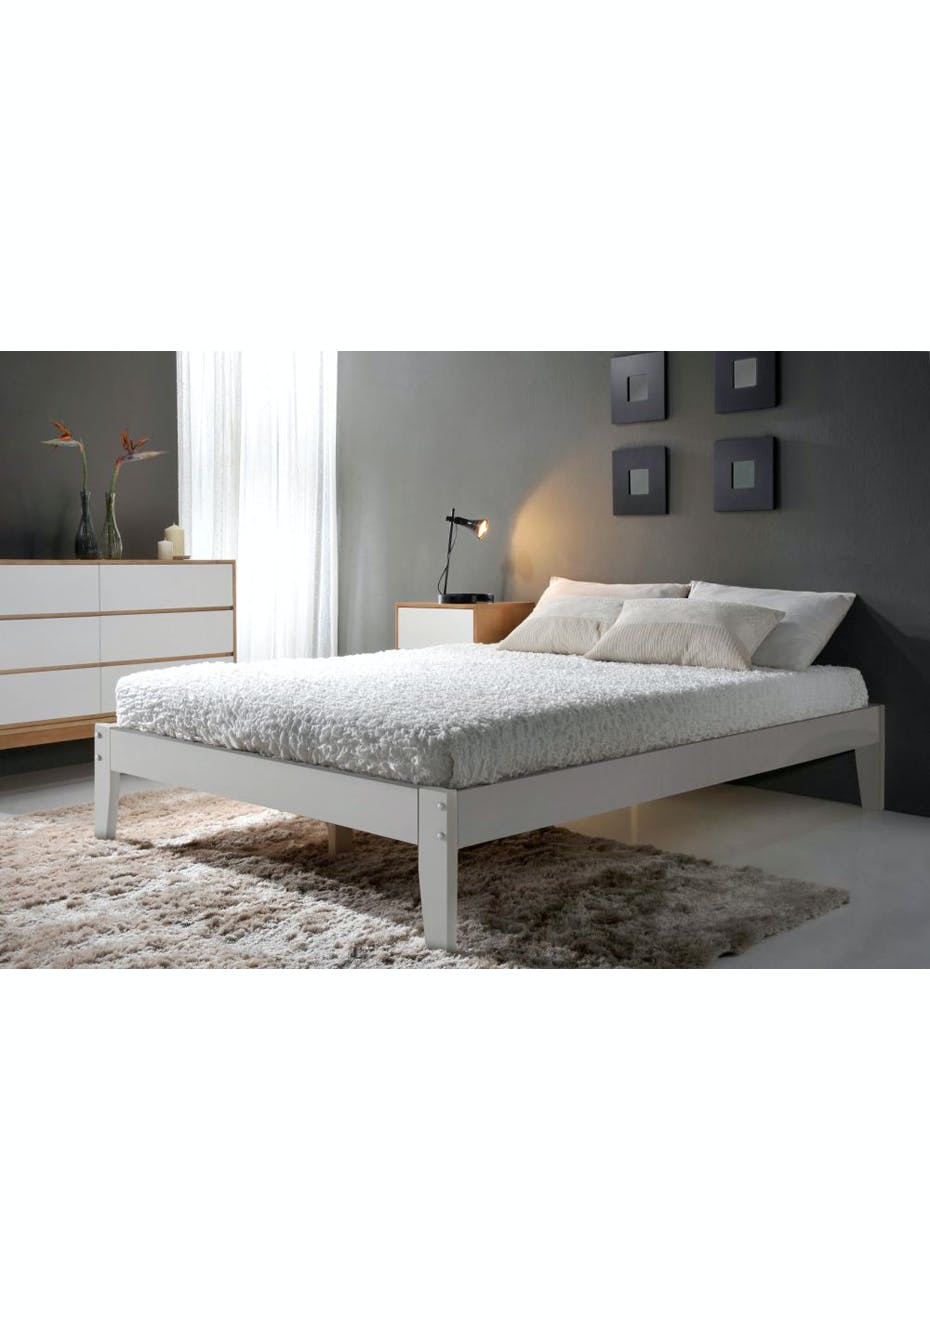 photos of bedroom furniture. Sovo Queen Bed White Photos Of Bedroom Furniture